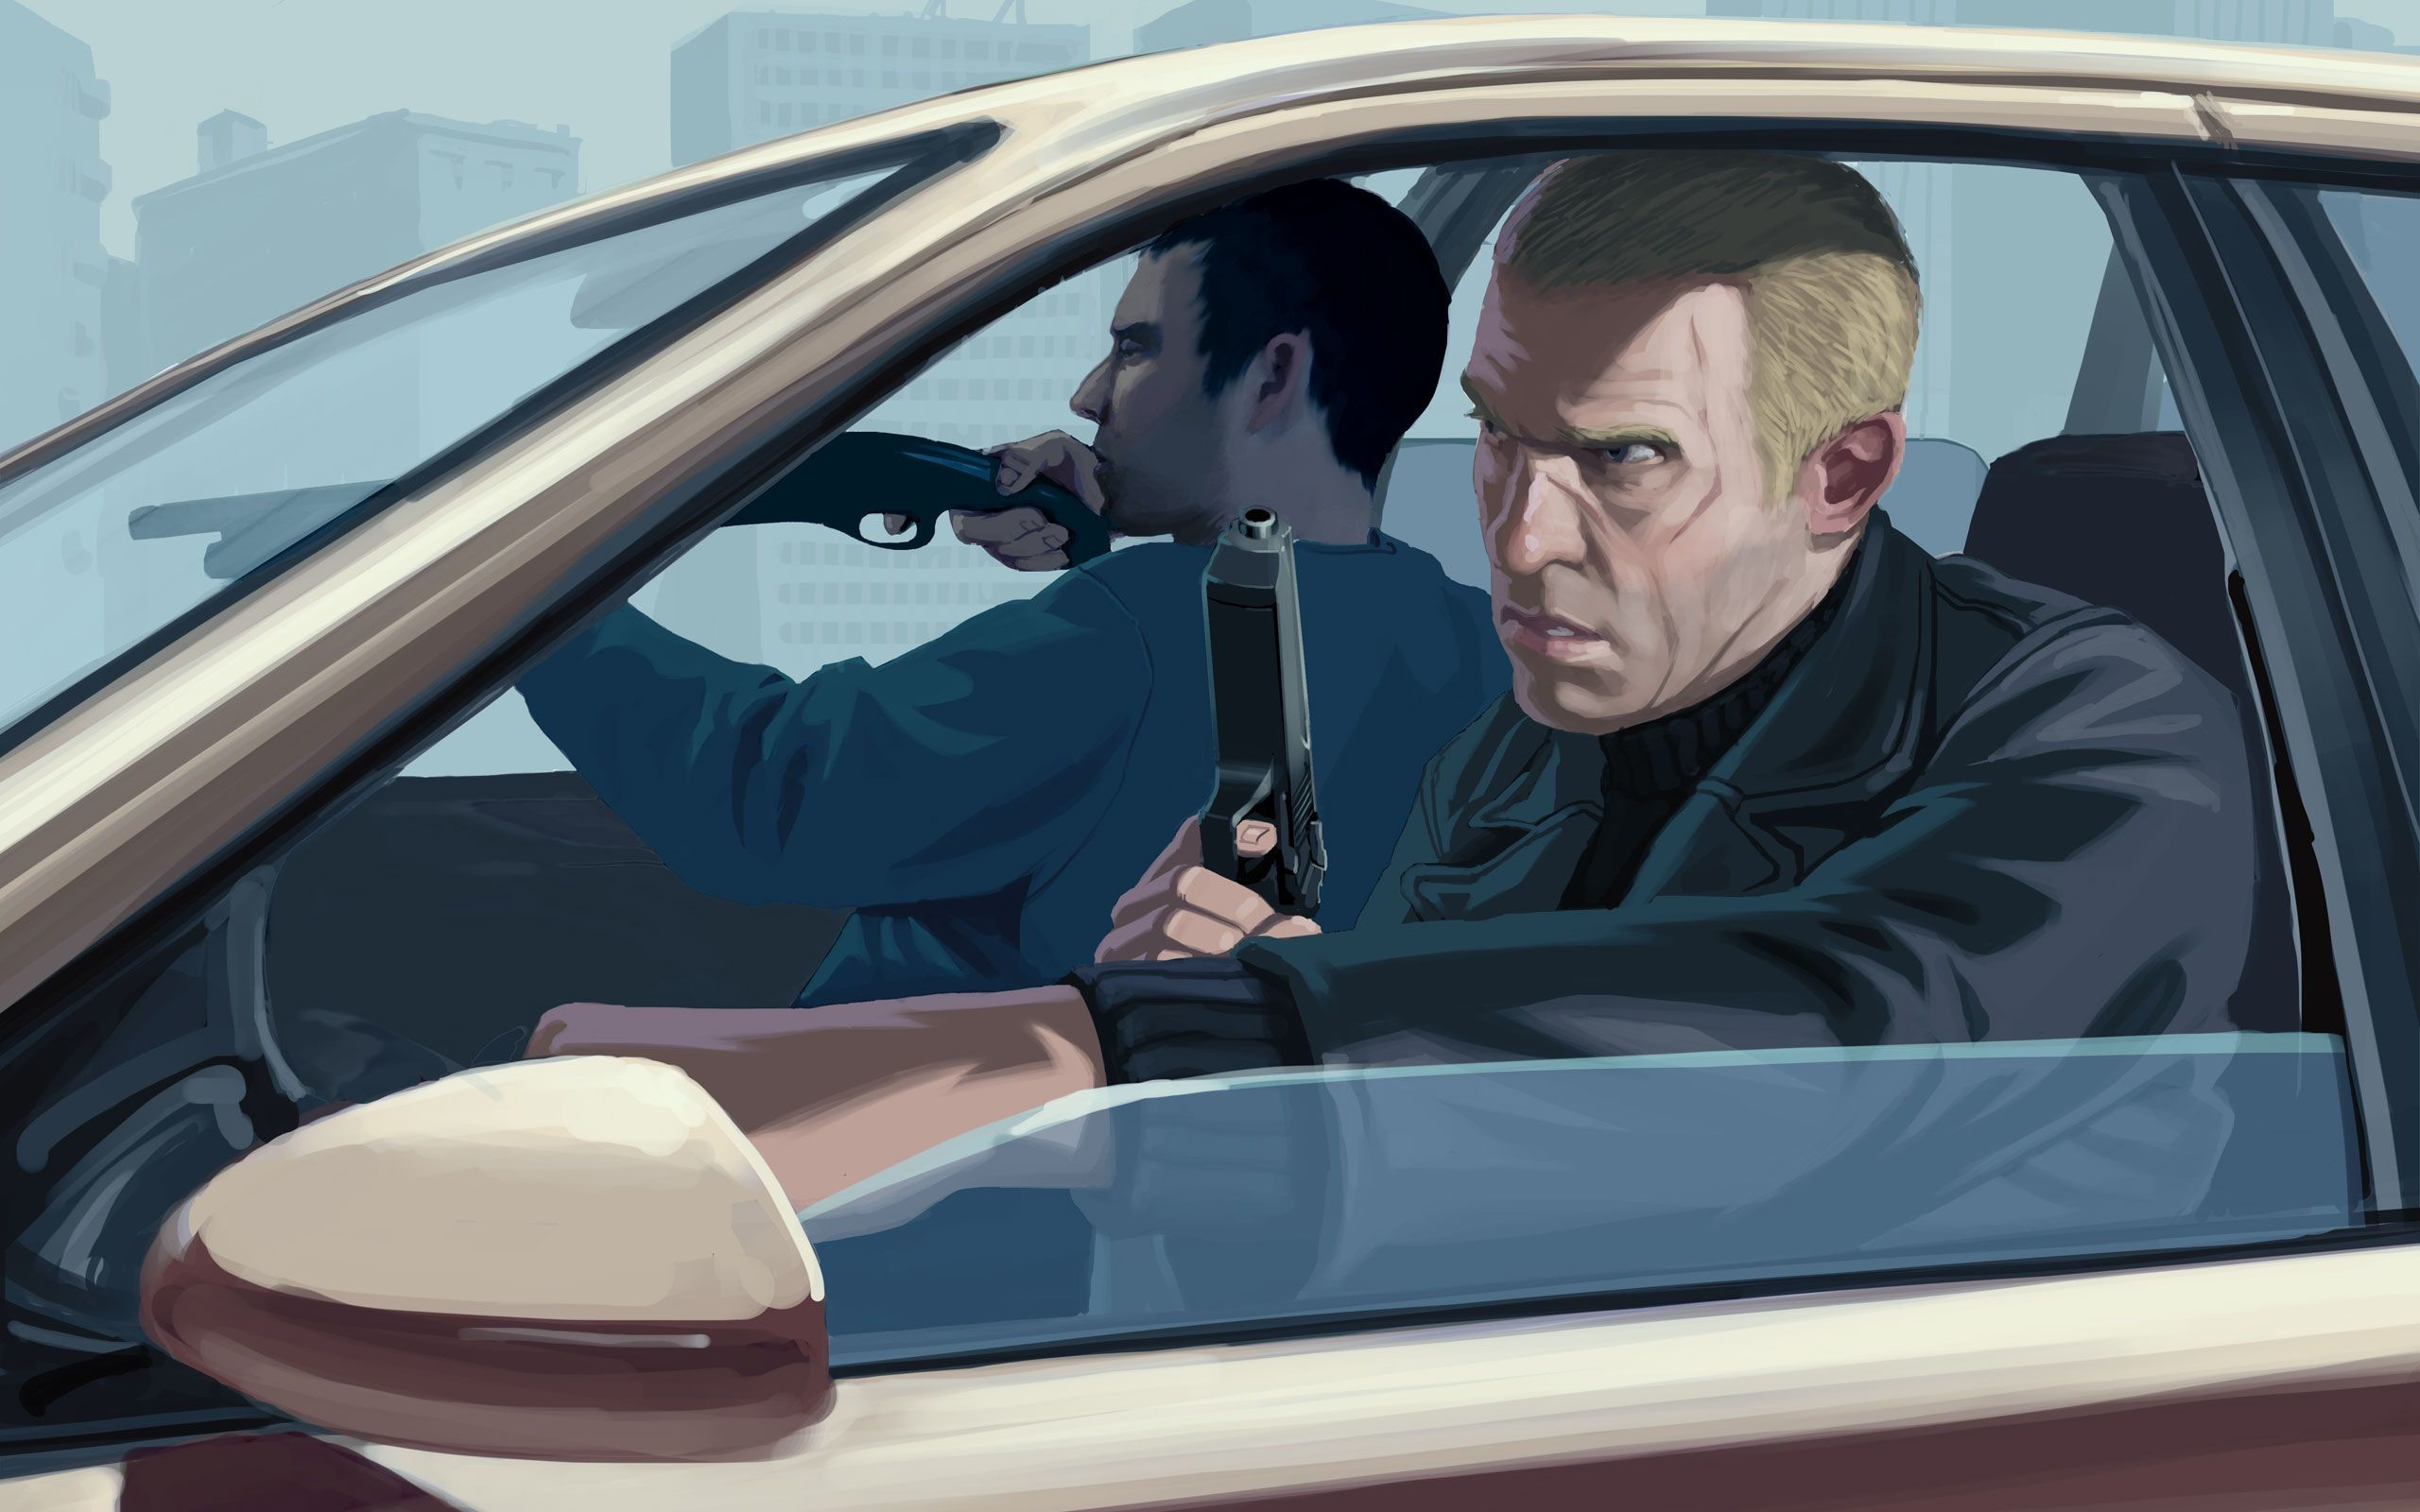 Res: 2560x1600, Ultra HD K Niko bellic Wallpapers HD Desktop Backgrounds